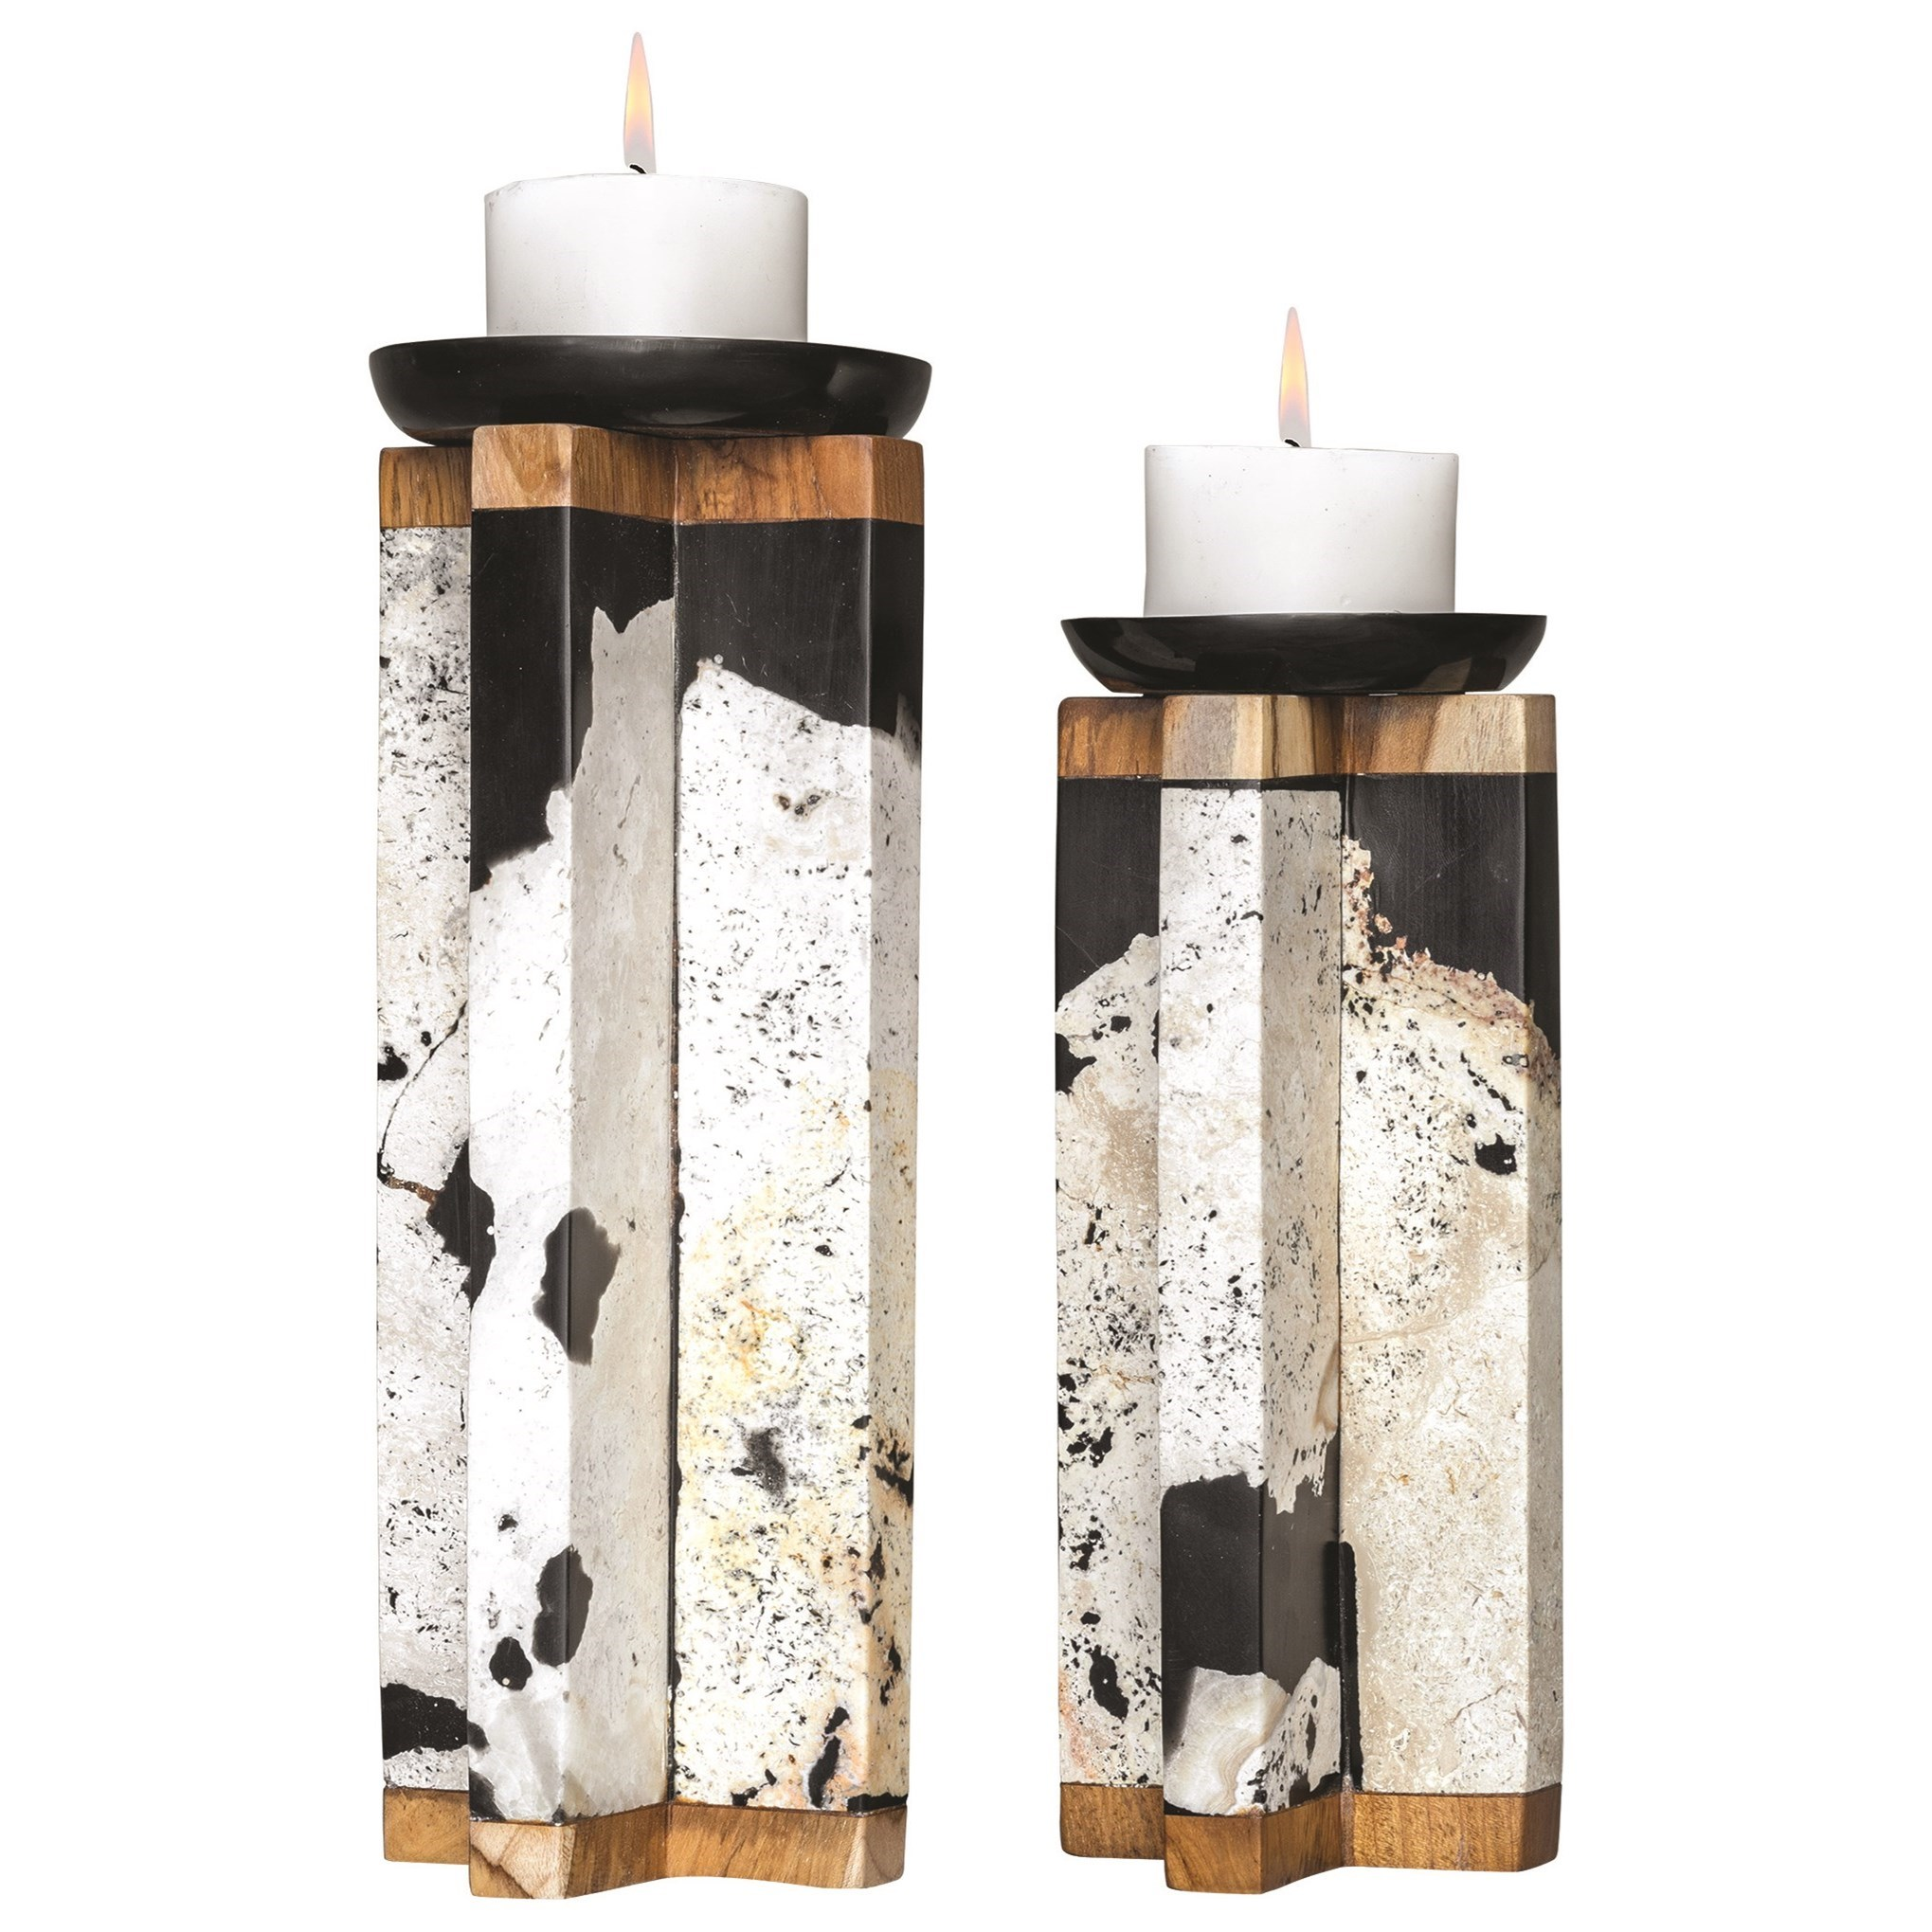 Accessories - Candle Holders Illini Stone Candleholders, S/2 by Uttermost at Mueller Furniture